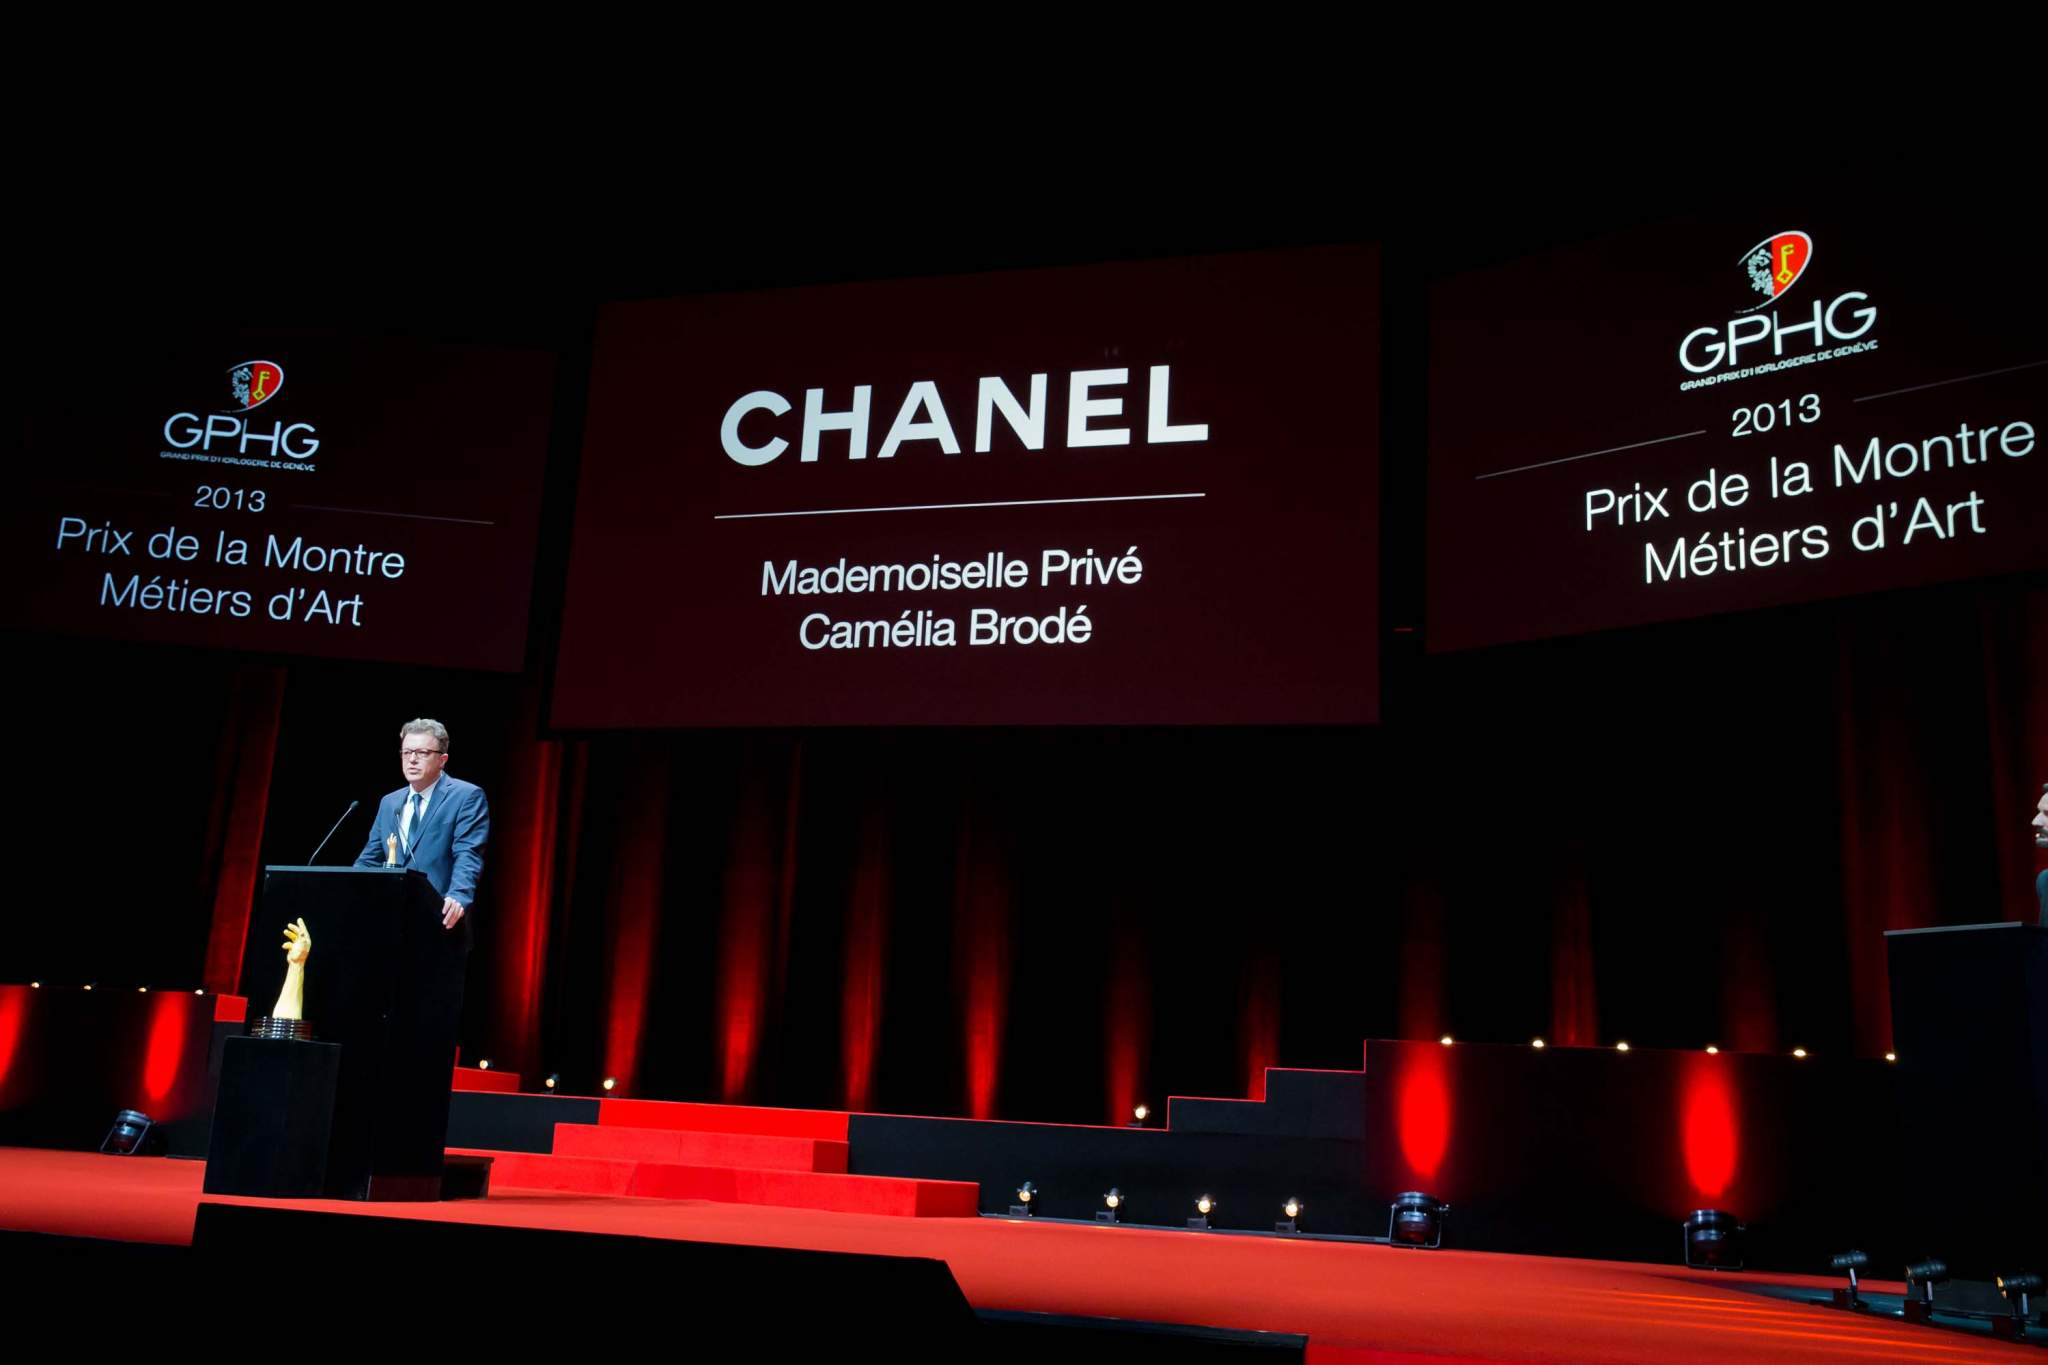 Speech of Nicolas Beau, International watch director of Chanel, winner of the Artistic Crafts Watch Prize 2013